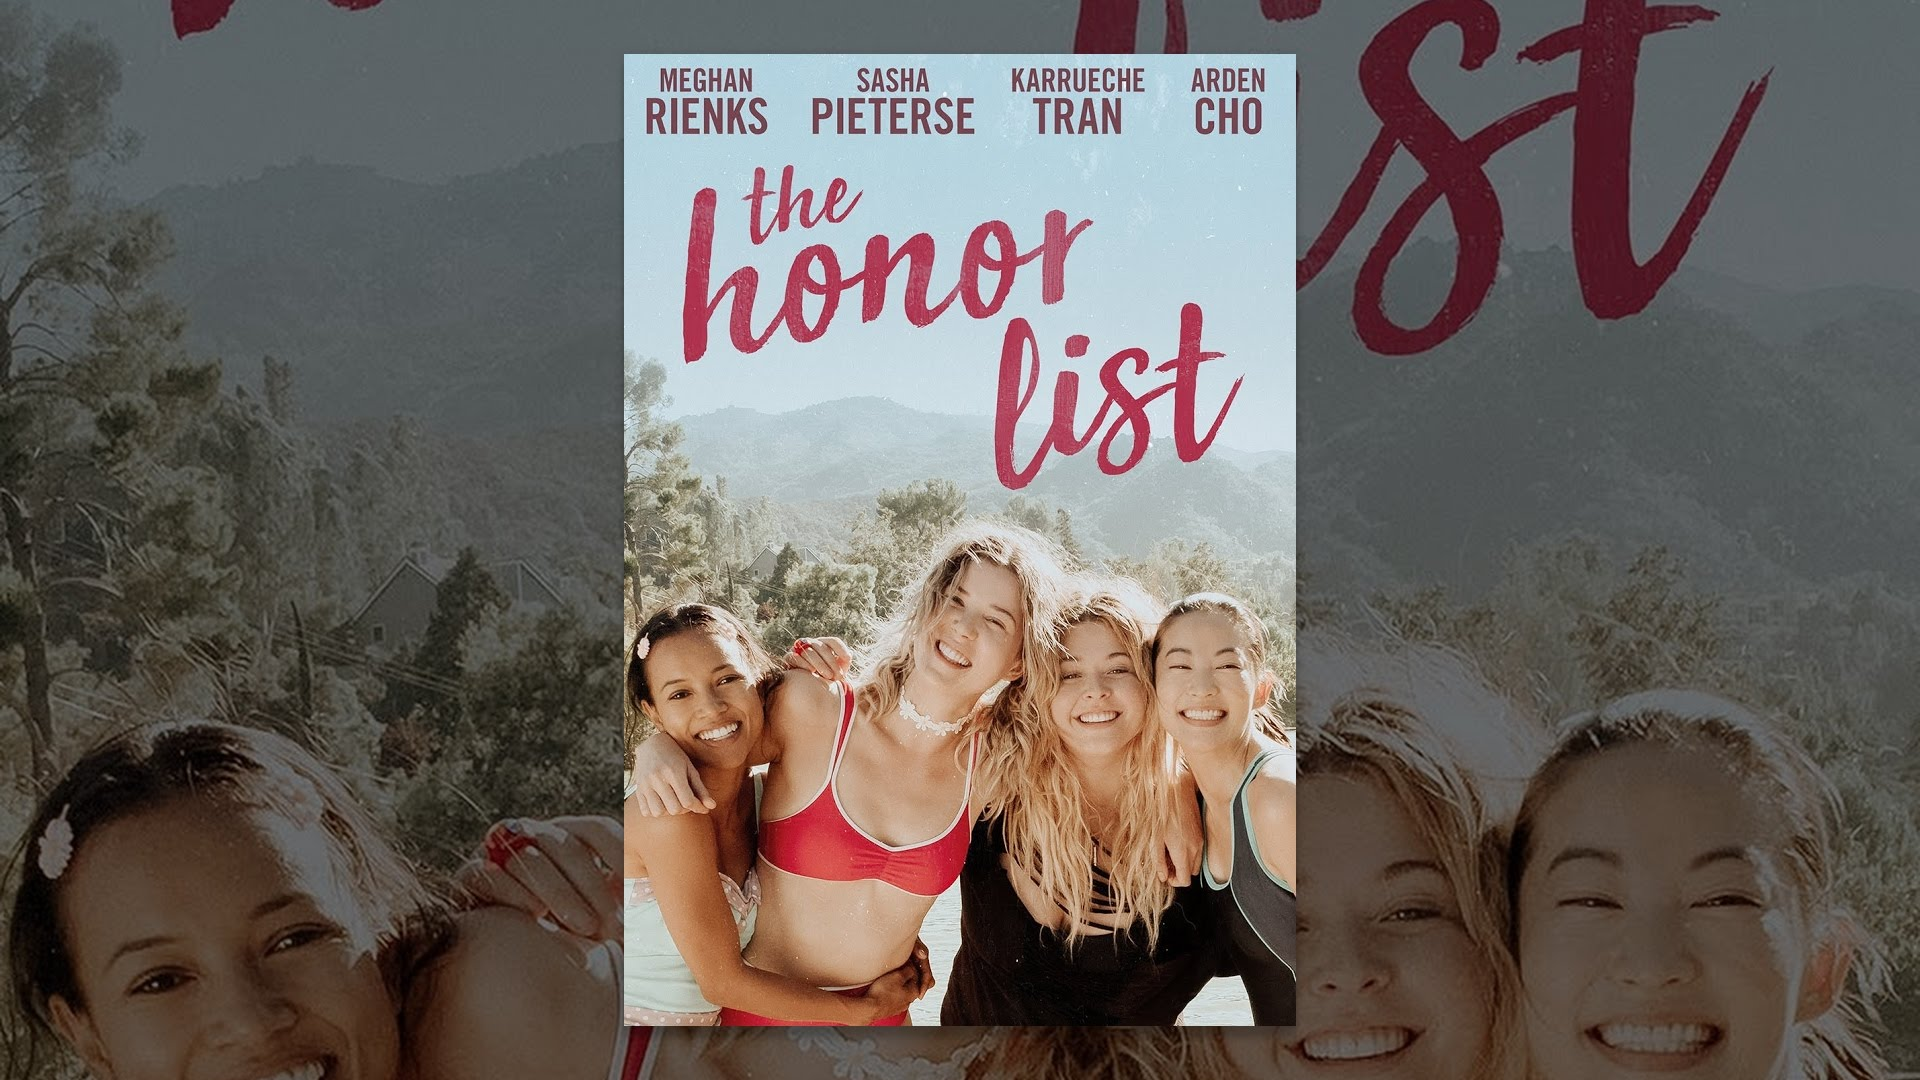 [VIDEO] - The Honor List 2